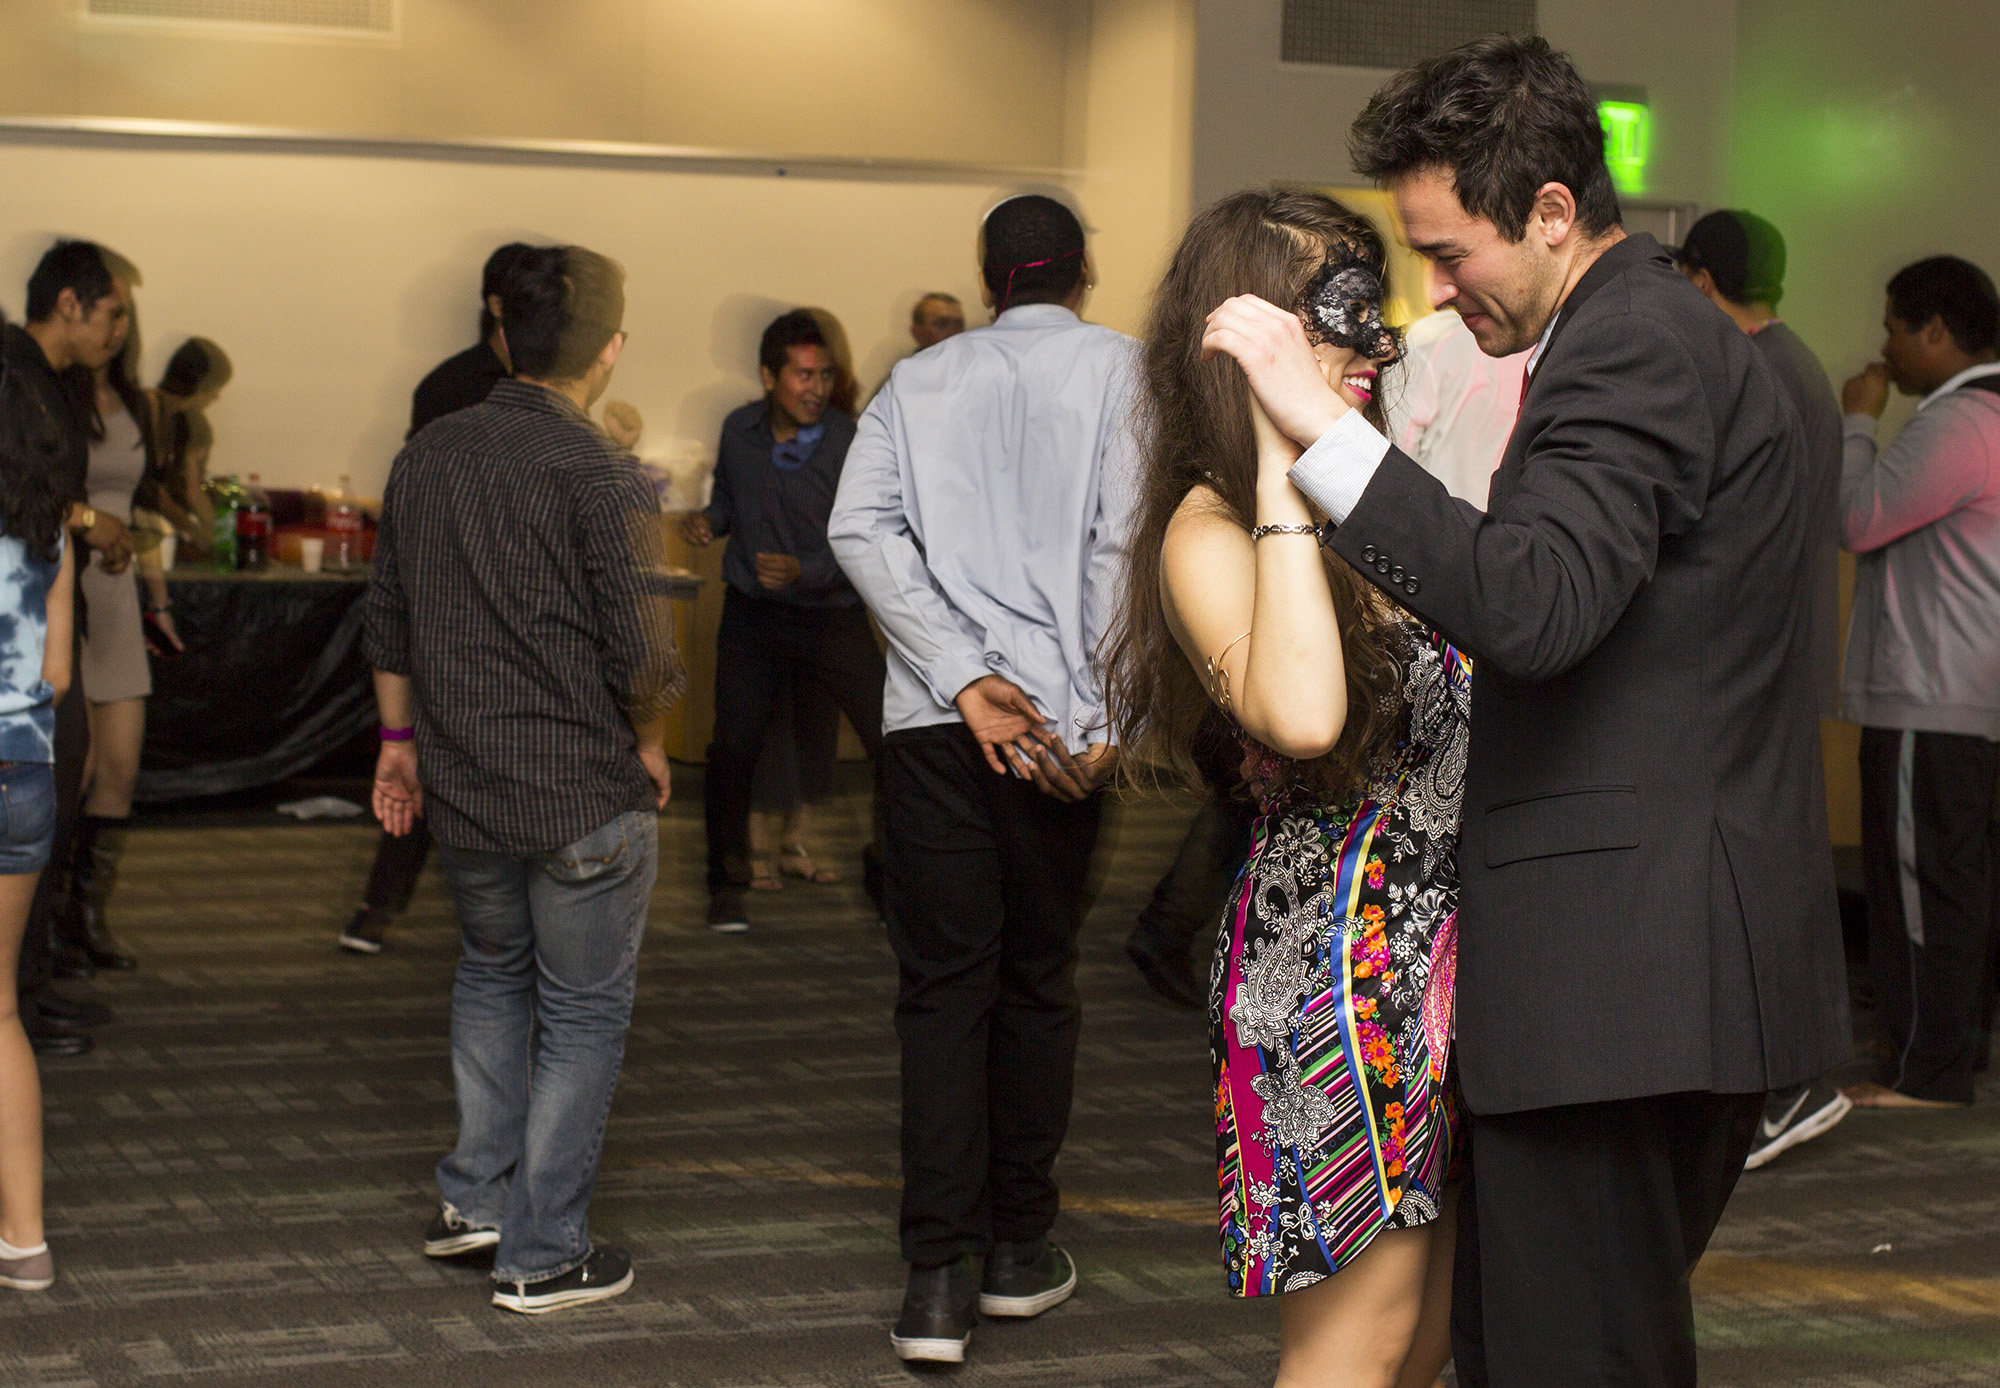 Masquerade Dance gives students a chance to mingle at Pierce